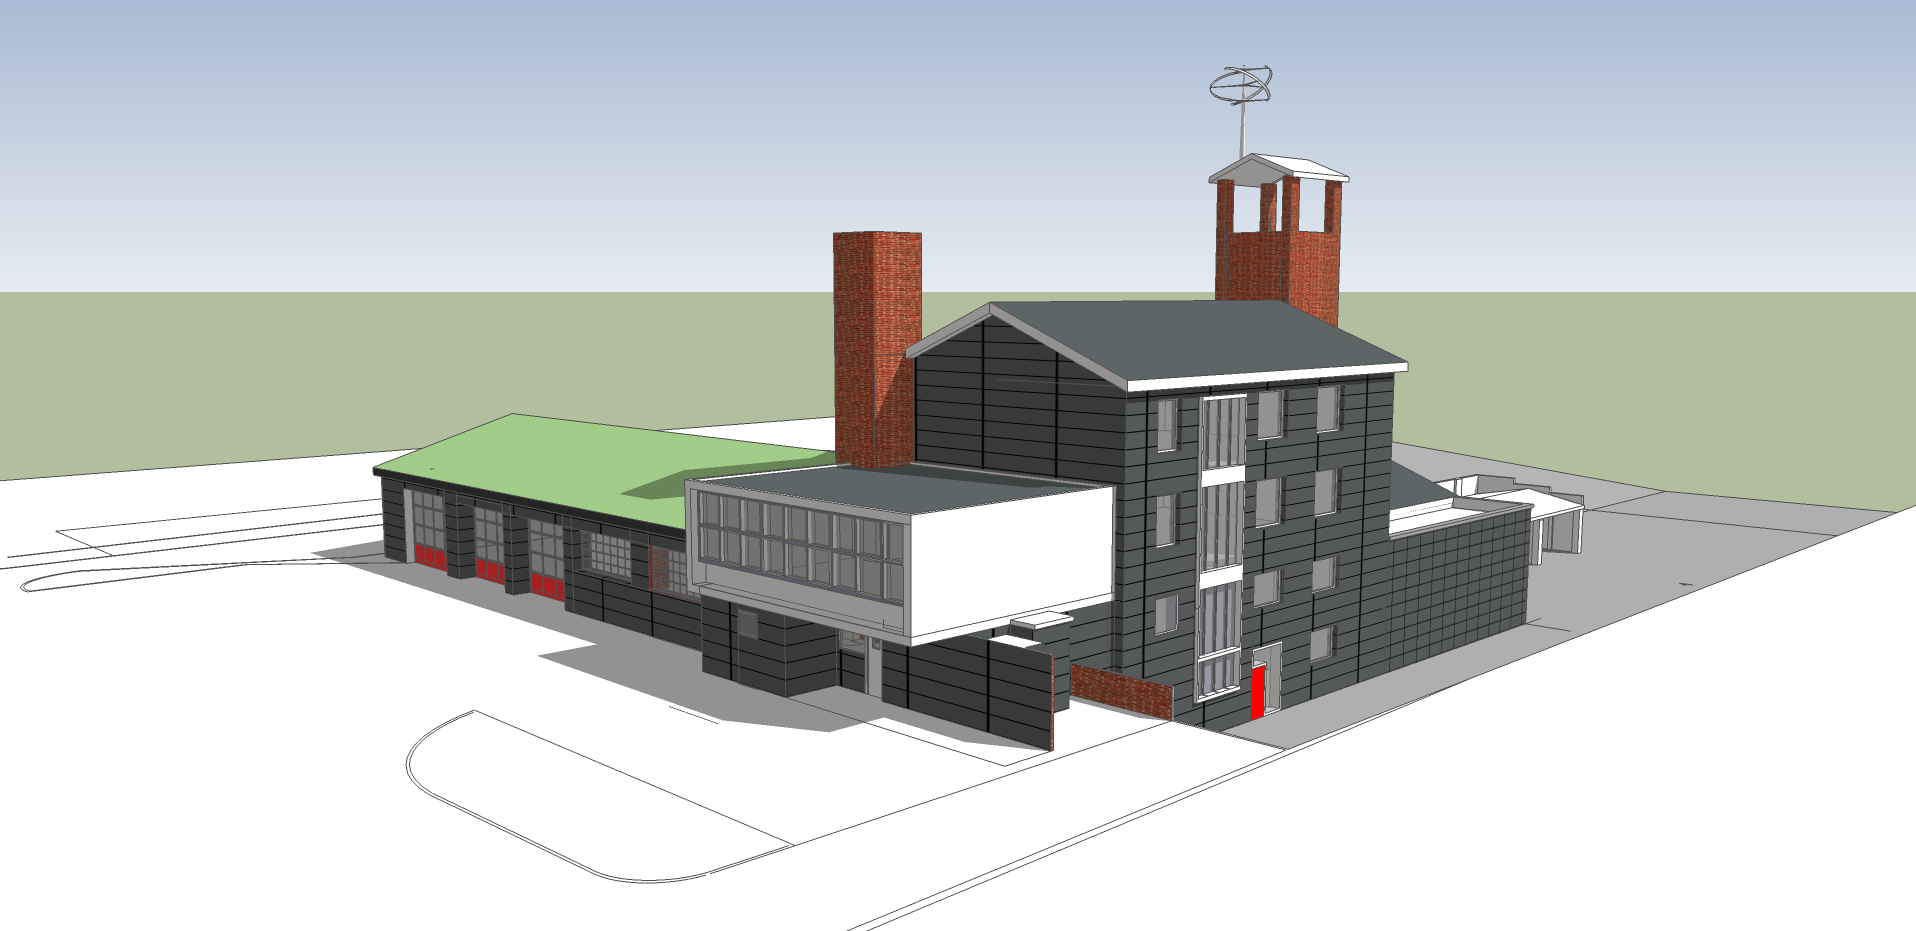 AGCROF FIRE STATION proposed this 2.png